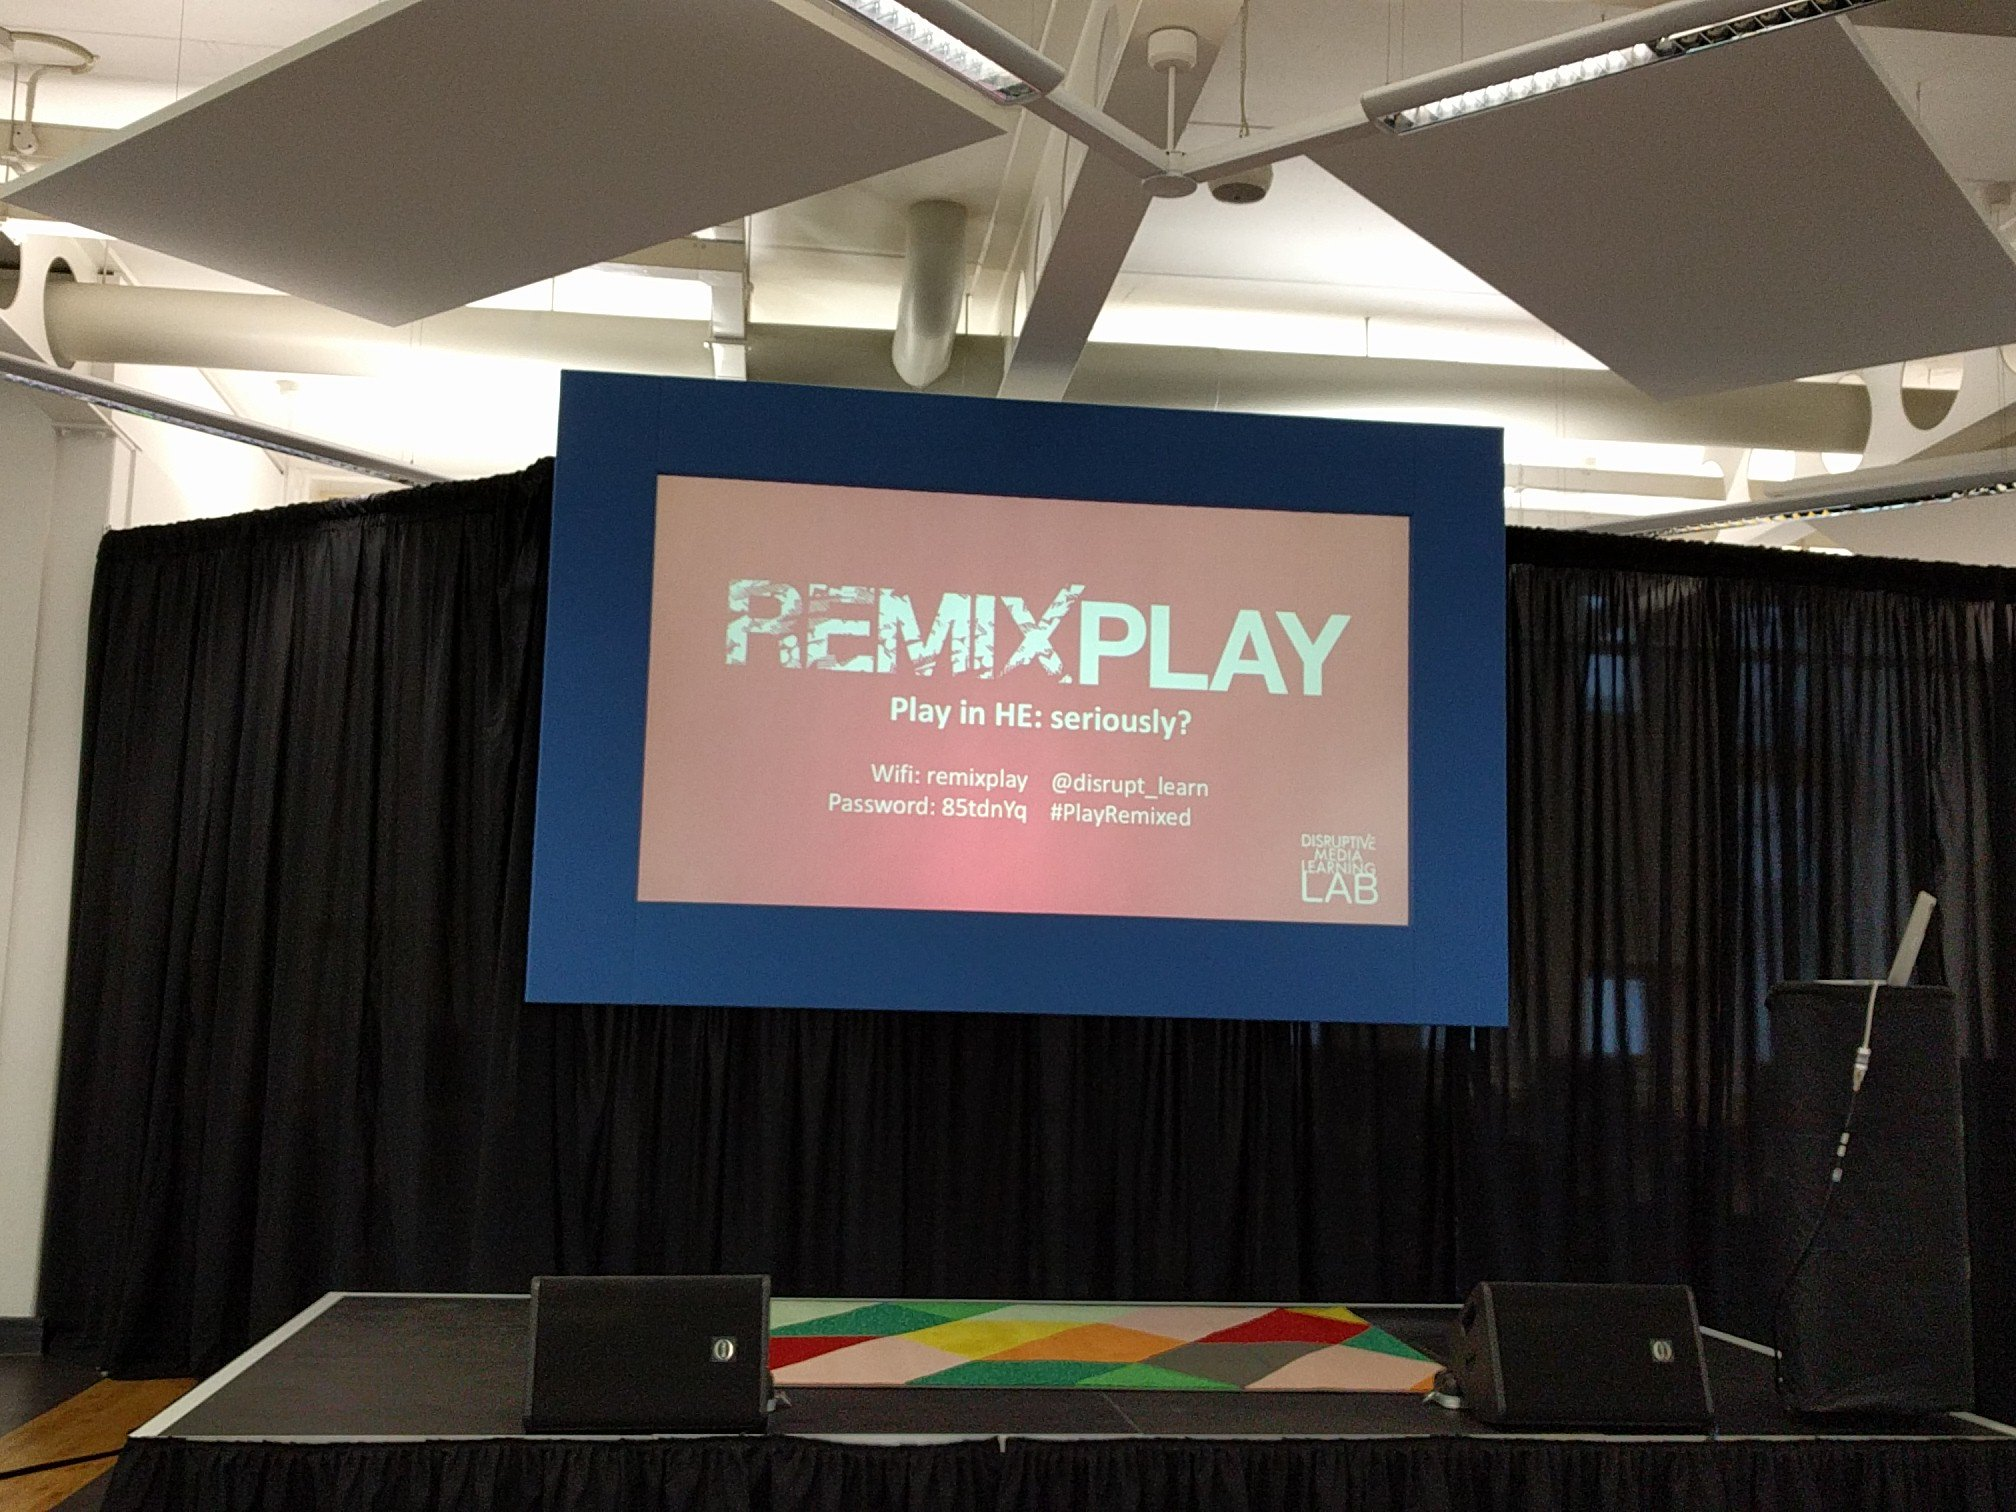 Such a great day today of fascinating learning, play and wonderful people. Thanks to everyone involved in making #PlayRemixed so great! https://t.co/Th72LZ3yKH